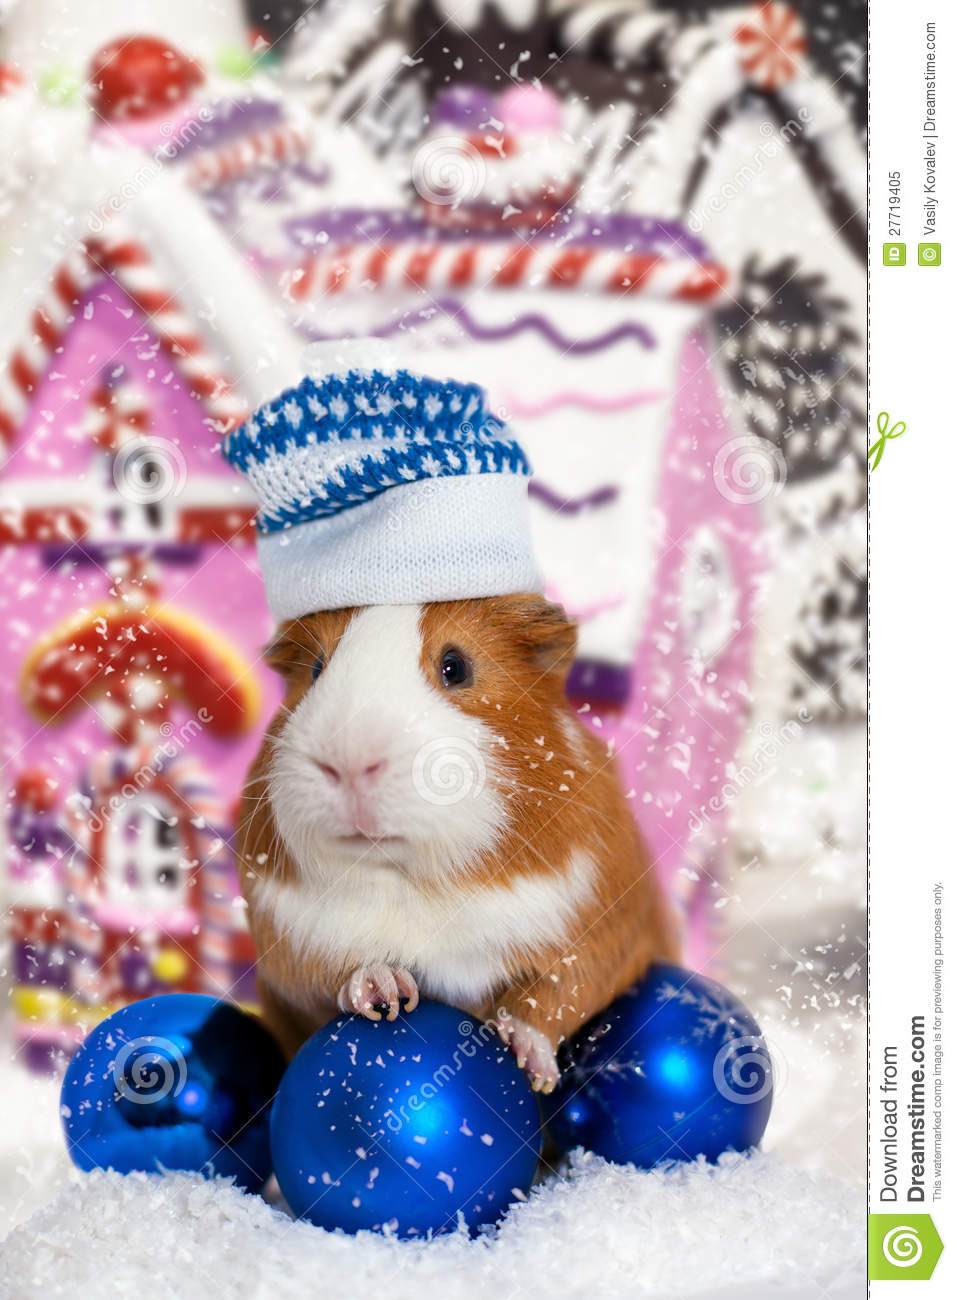 Guinea Pig In Winter Hat Over Christmas Background Royalty Free ...